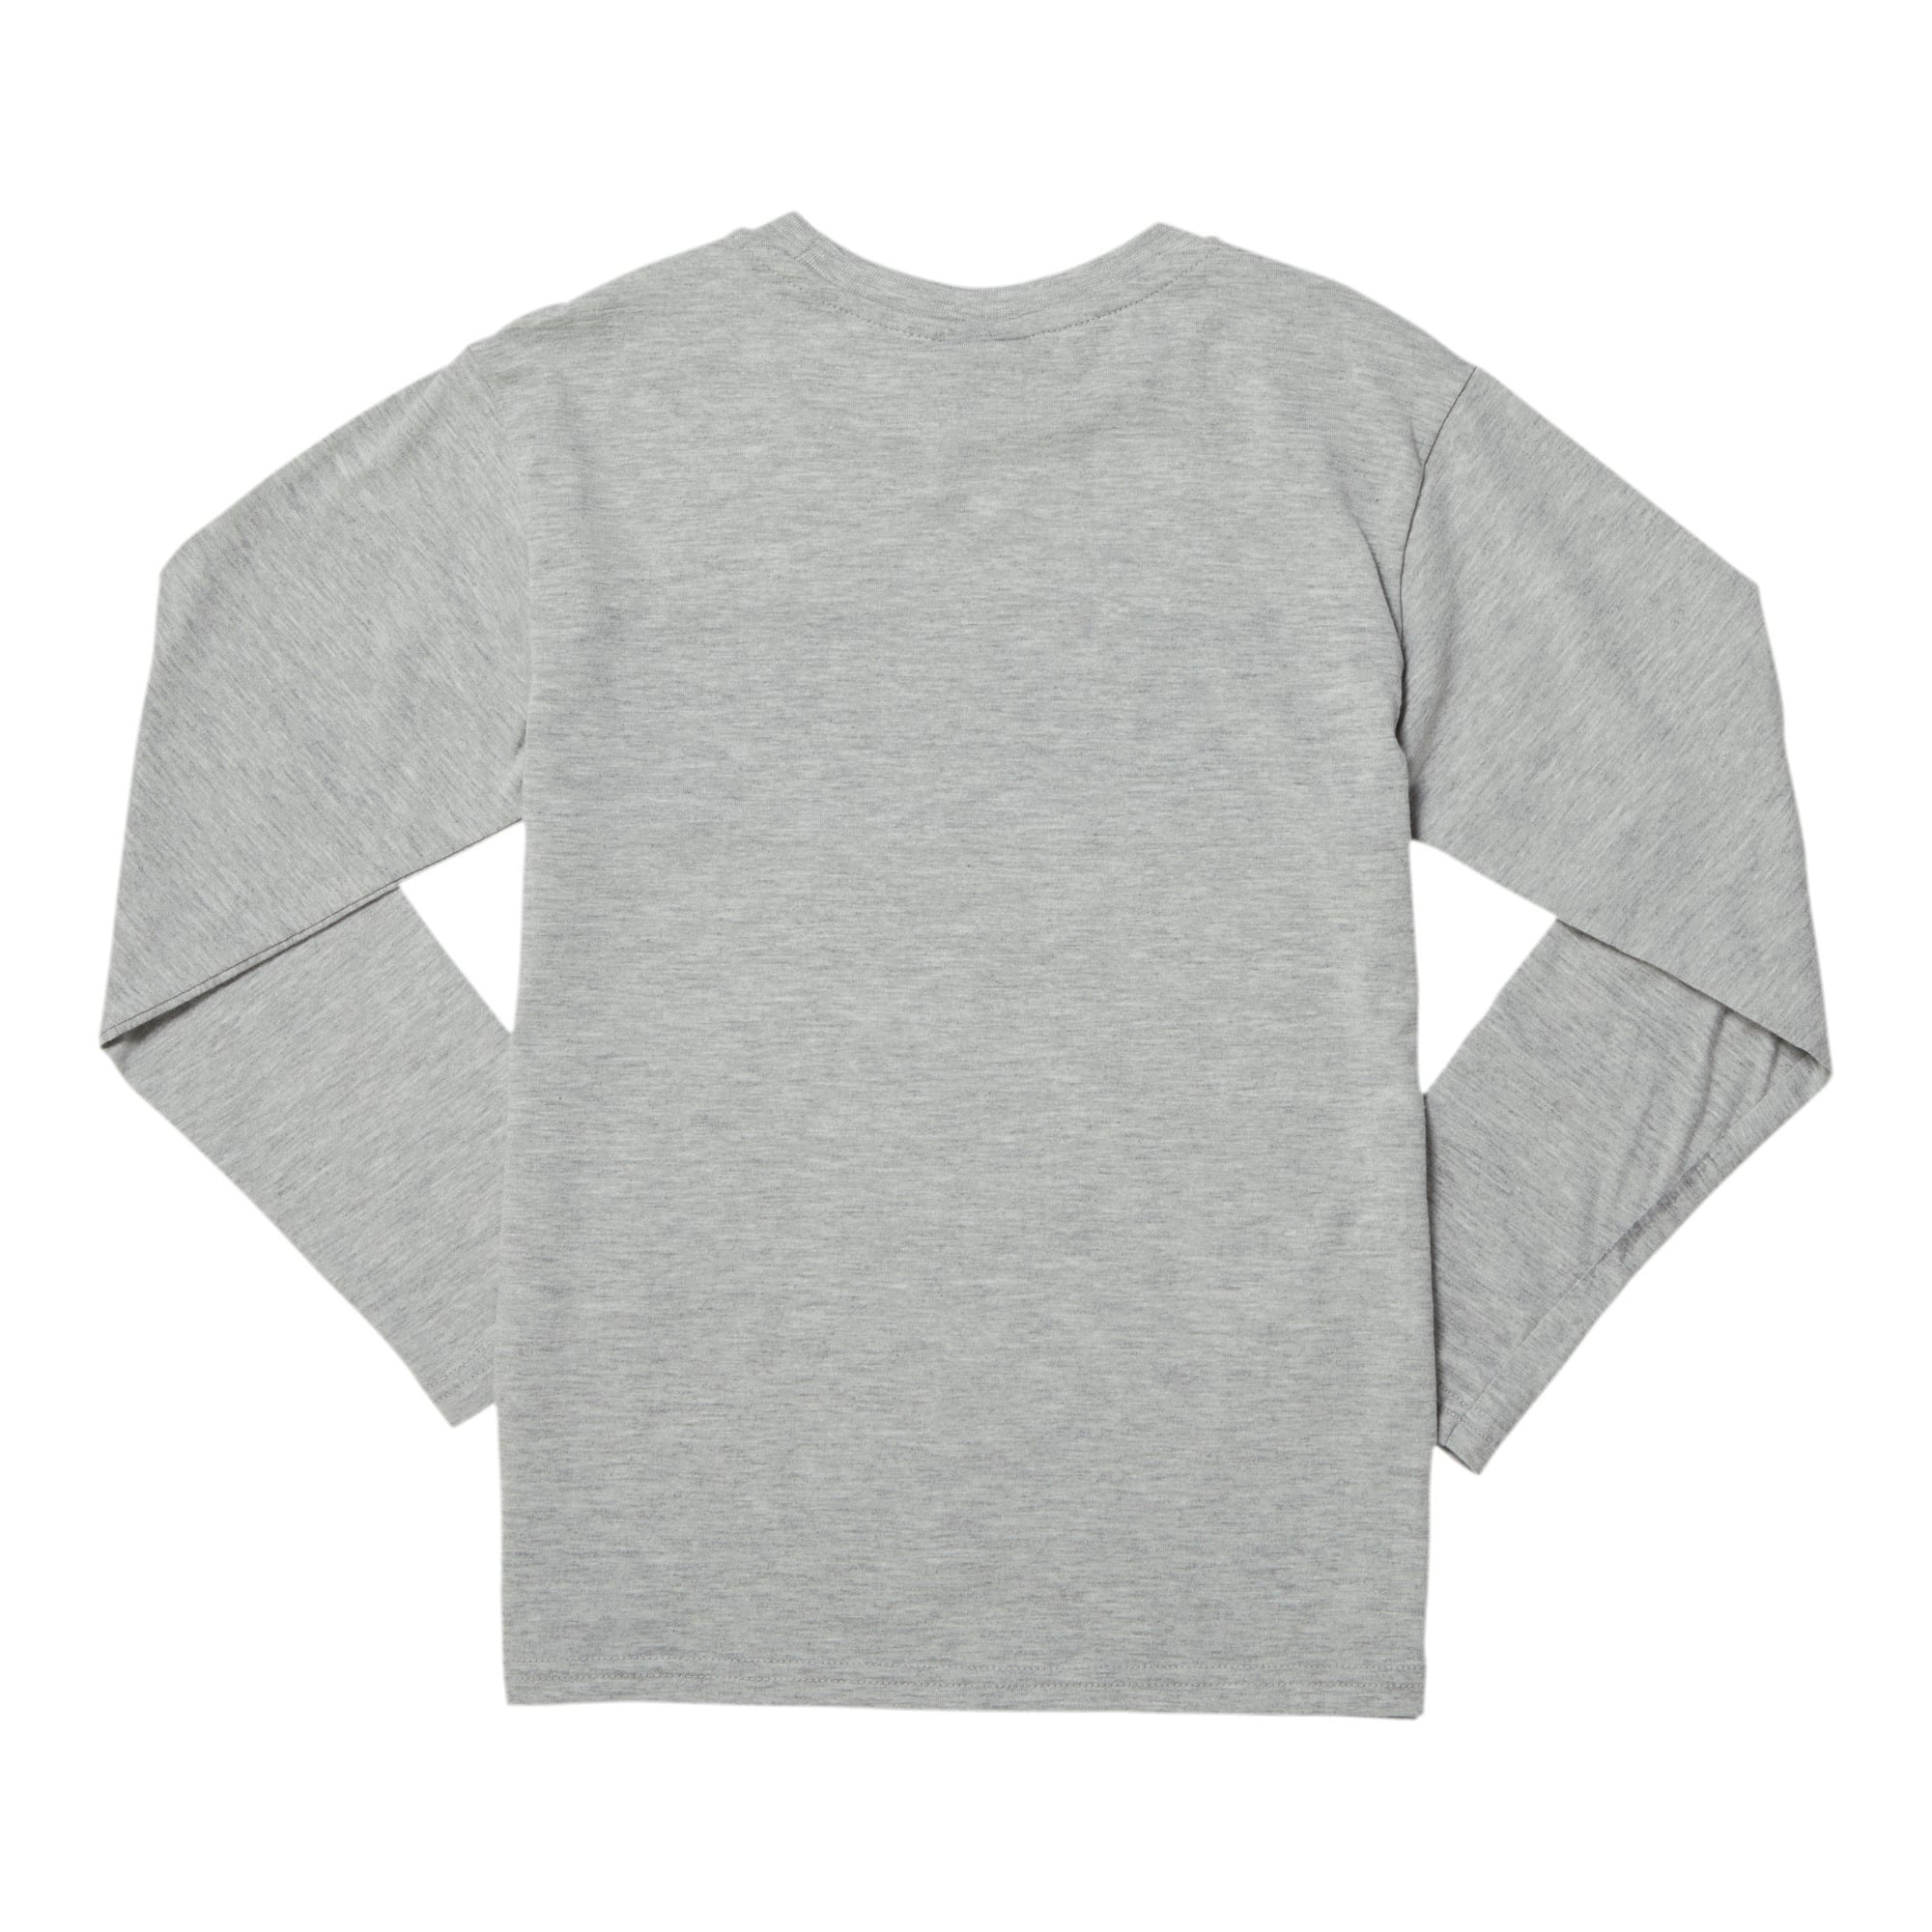 Thumbnail 2 of Amplified Pack Boys' Pieced Long Sleeve Tee JR, LT HEATHER GREY, medium